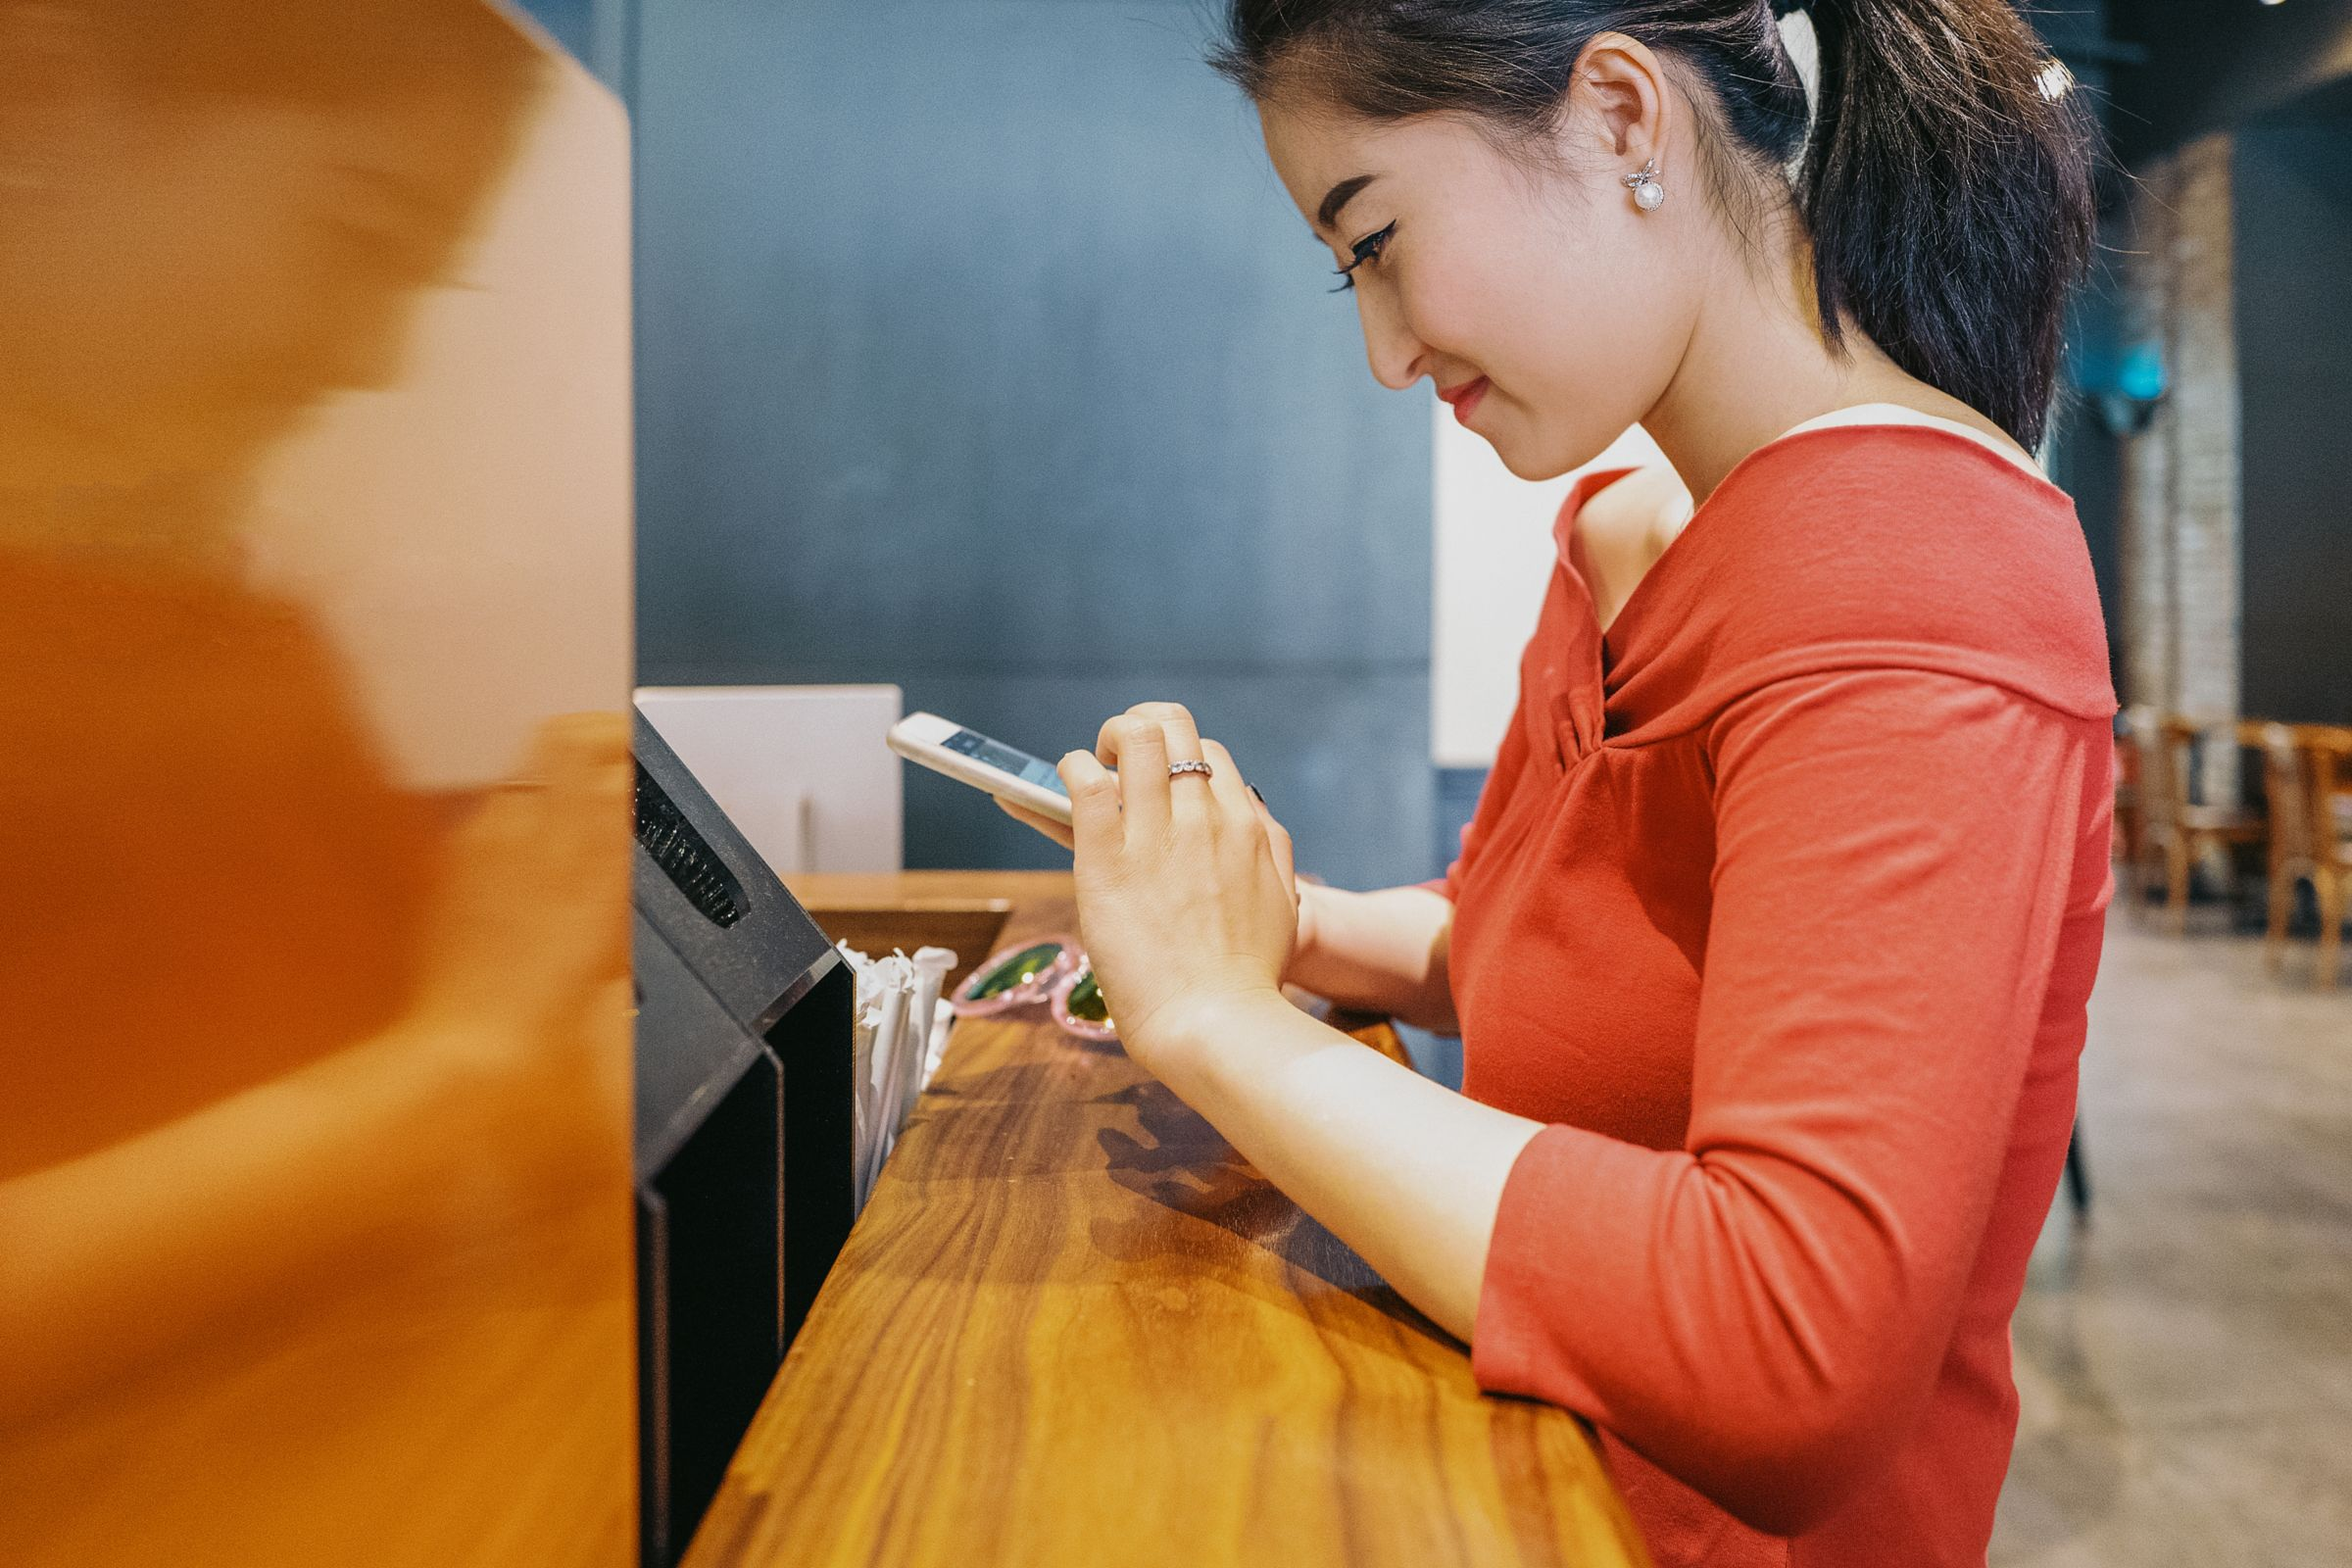 woman at counter holding a phone